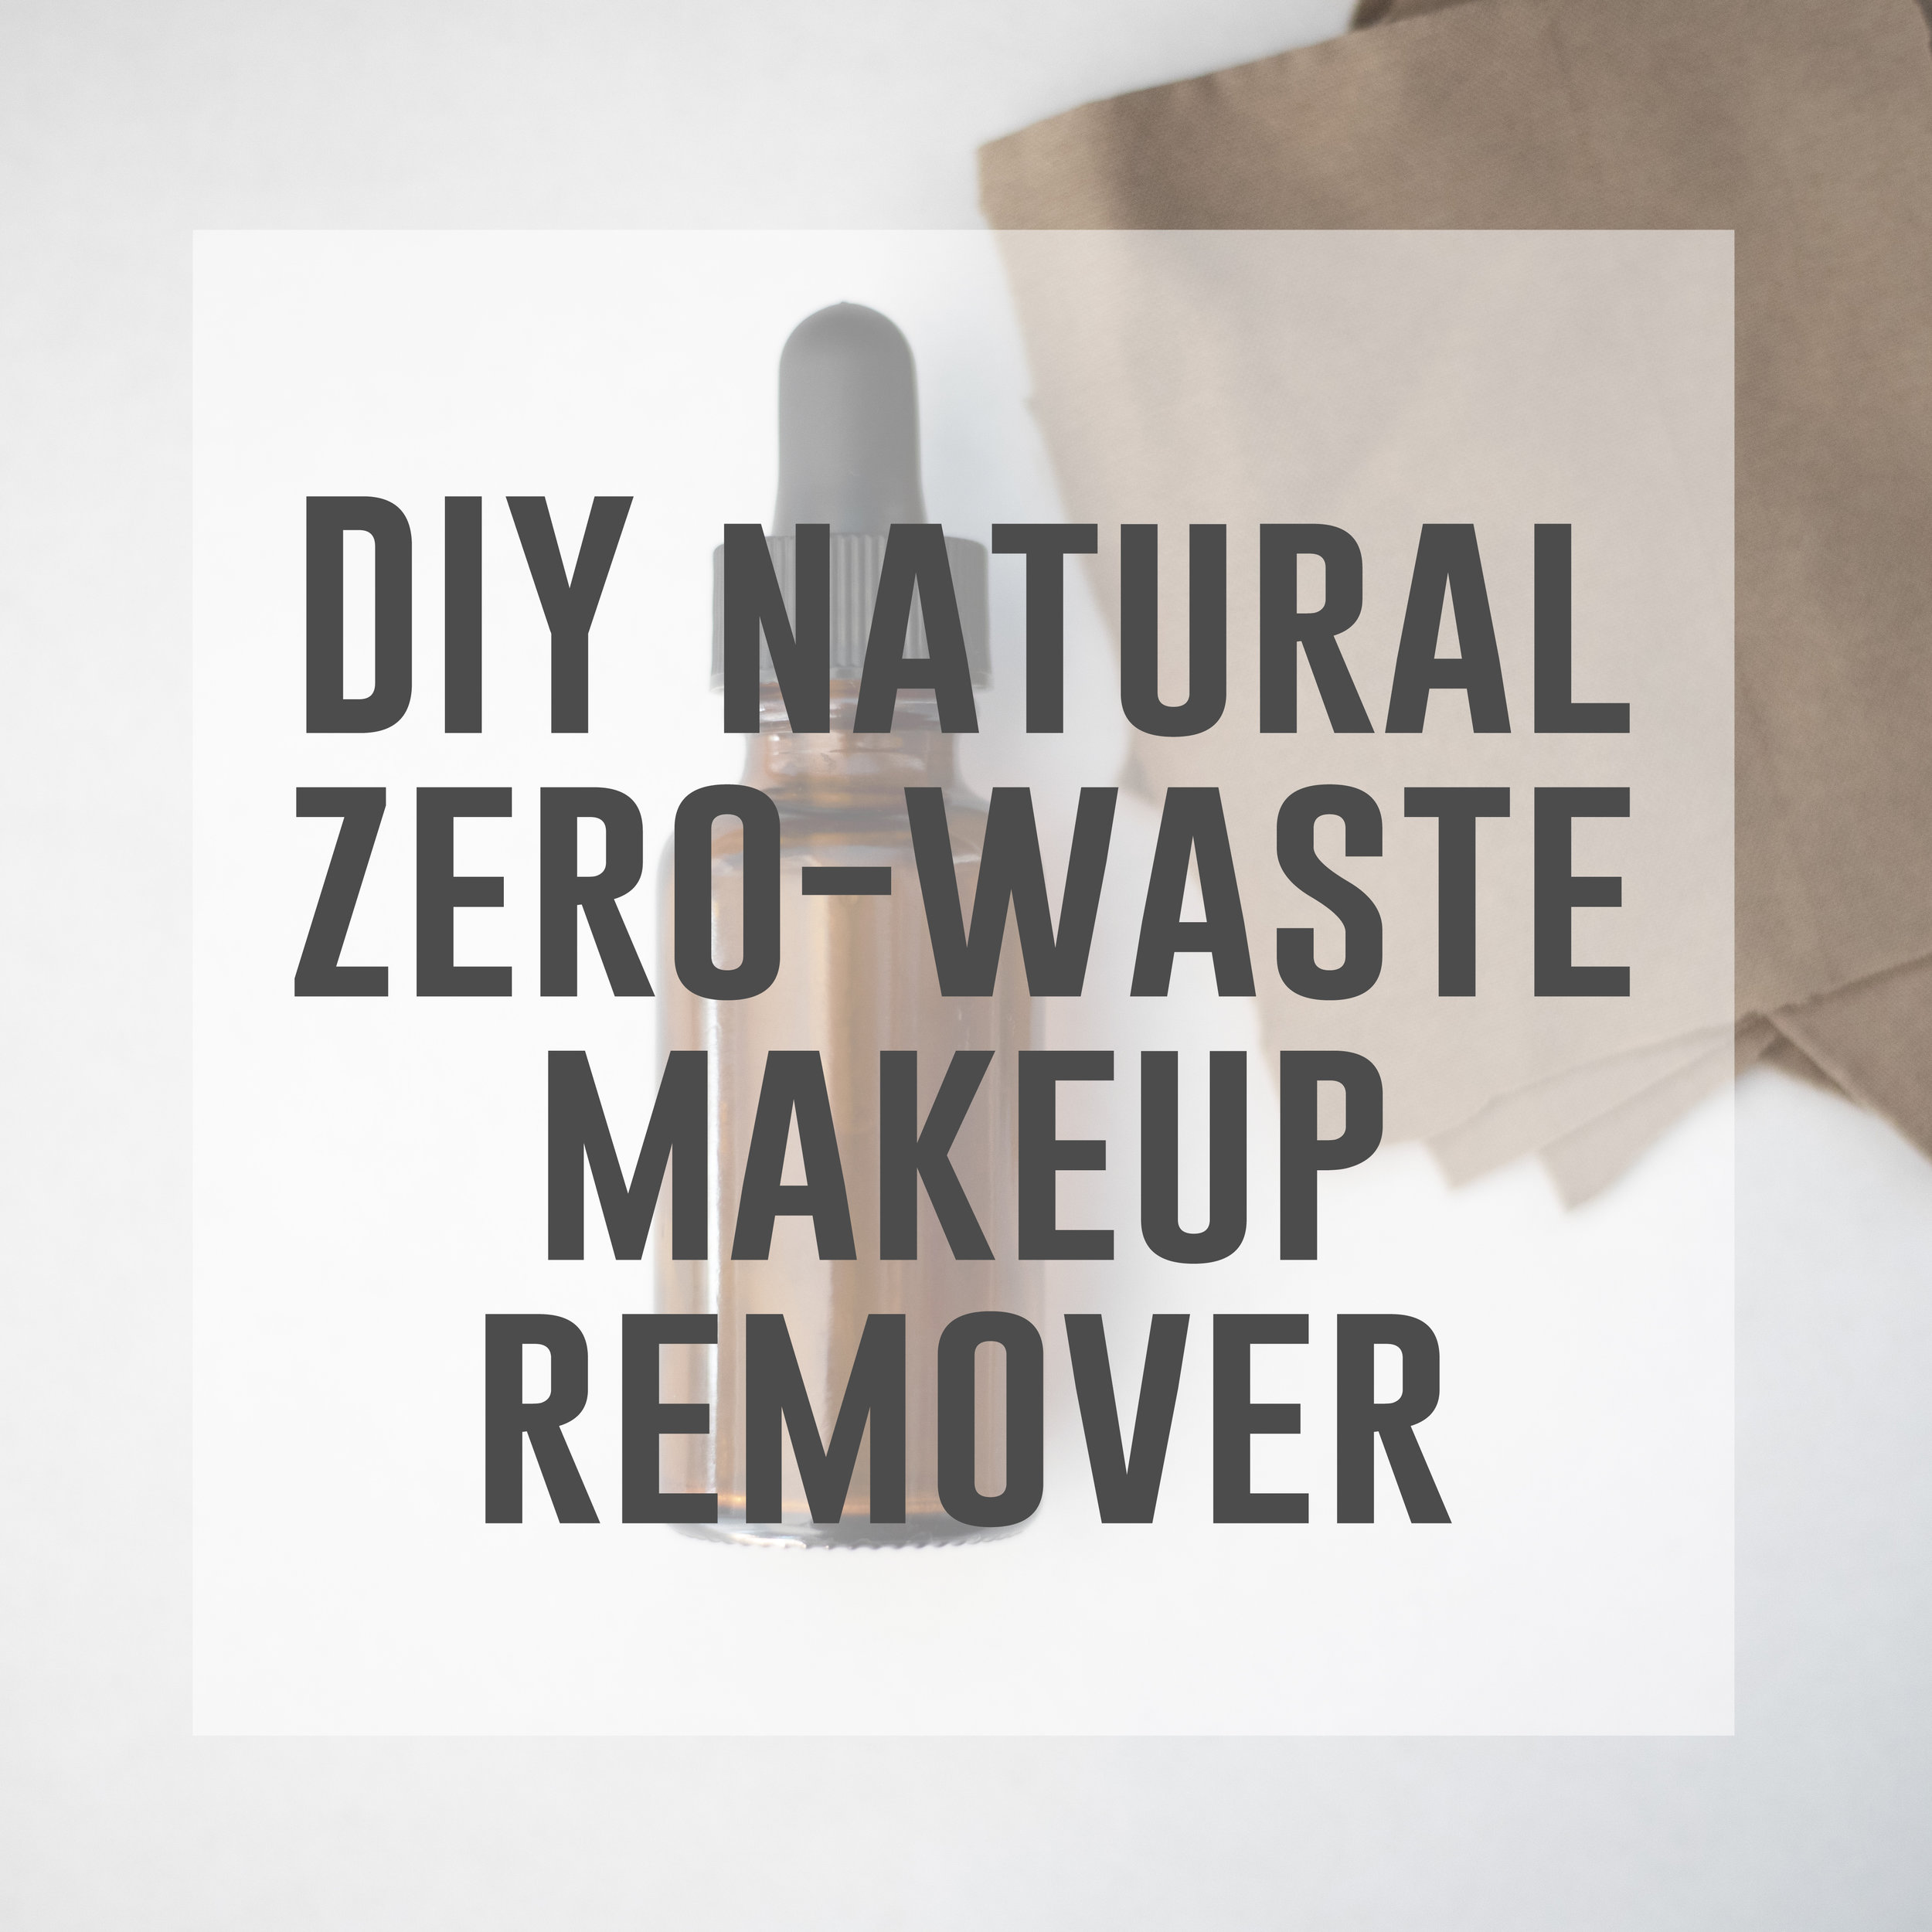 makeup-remover-featured-image.jpg